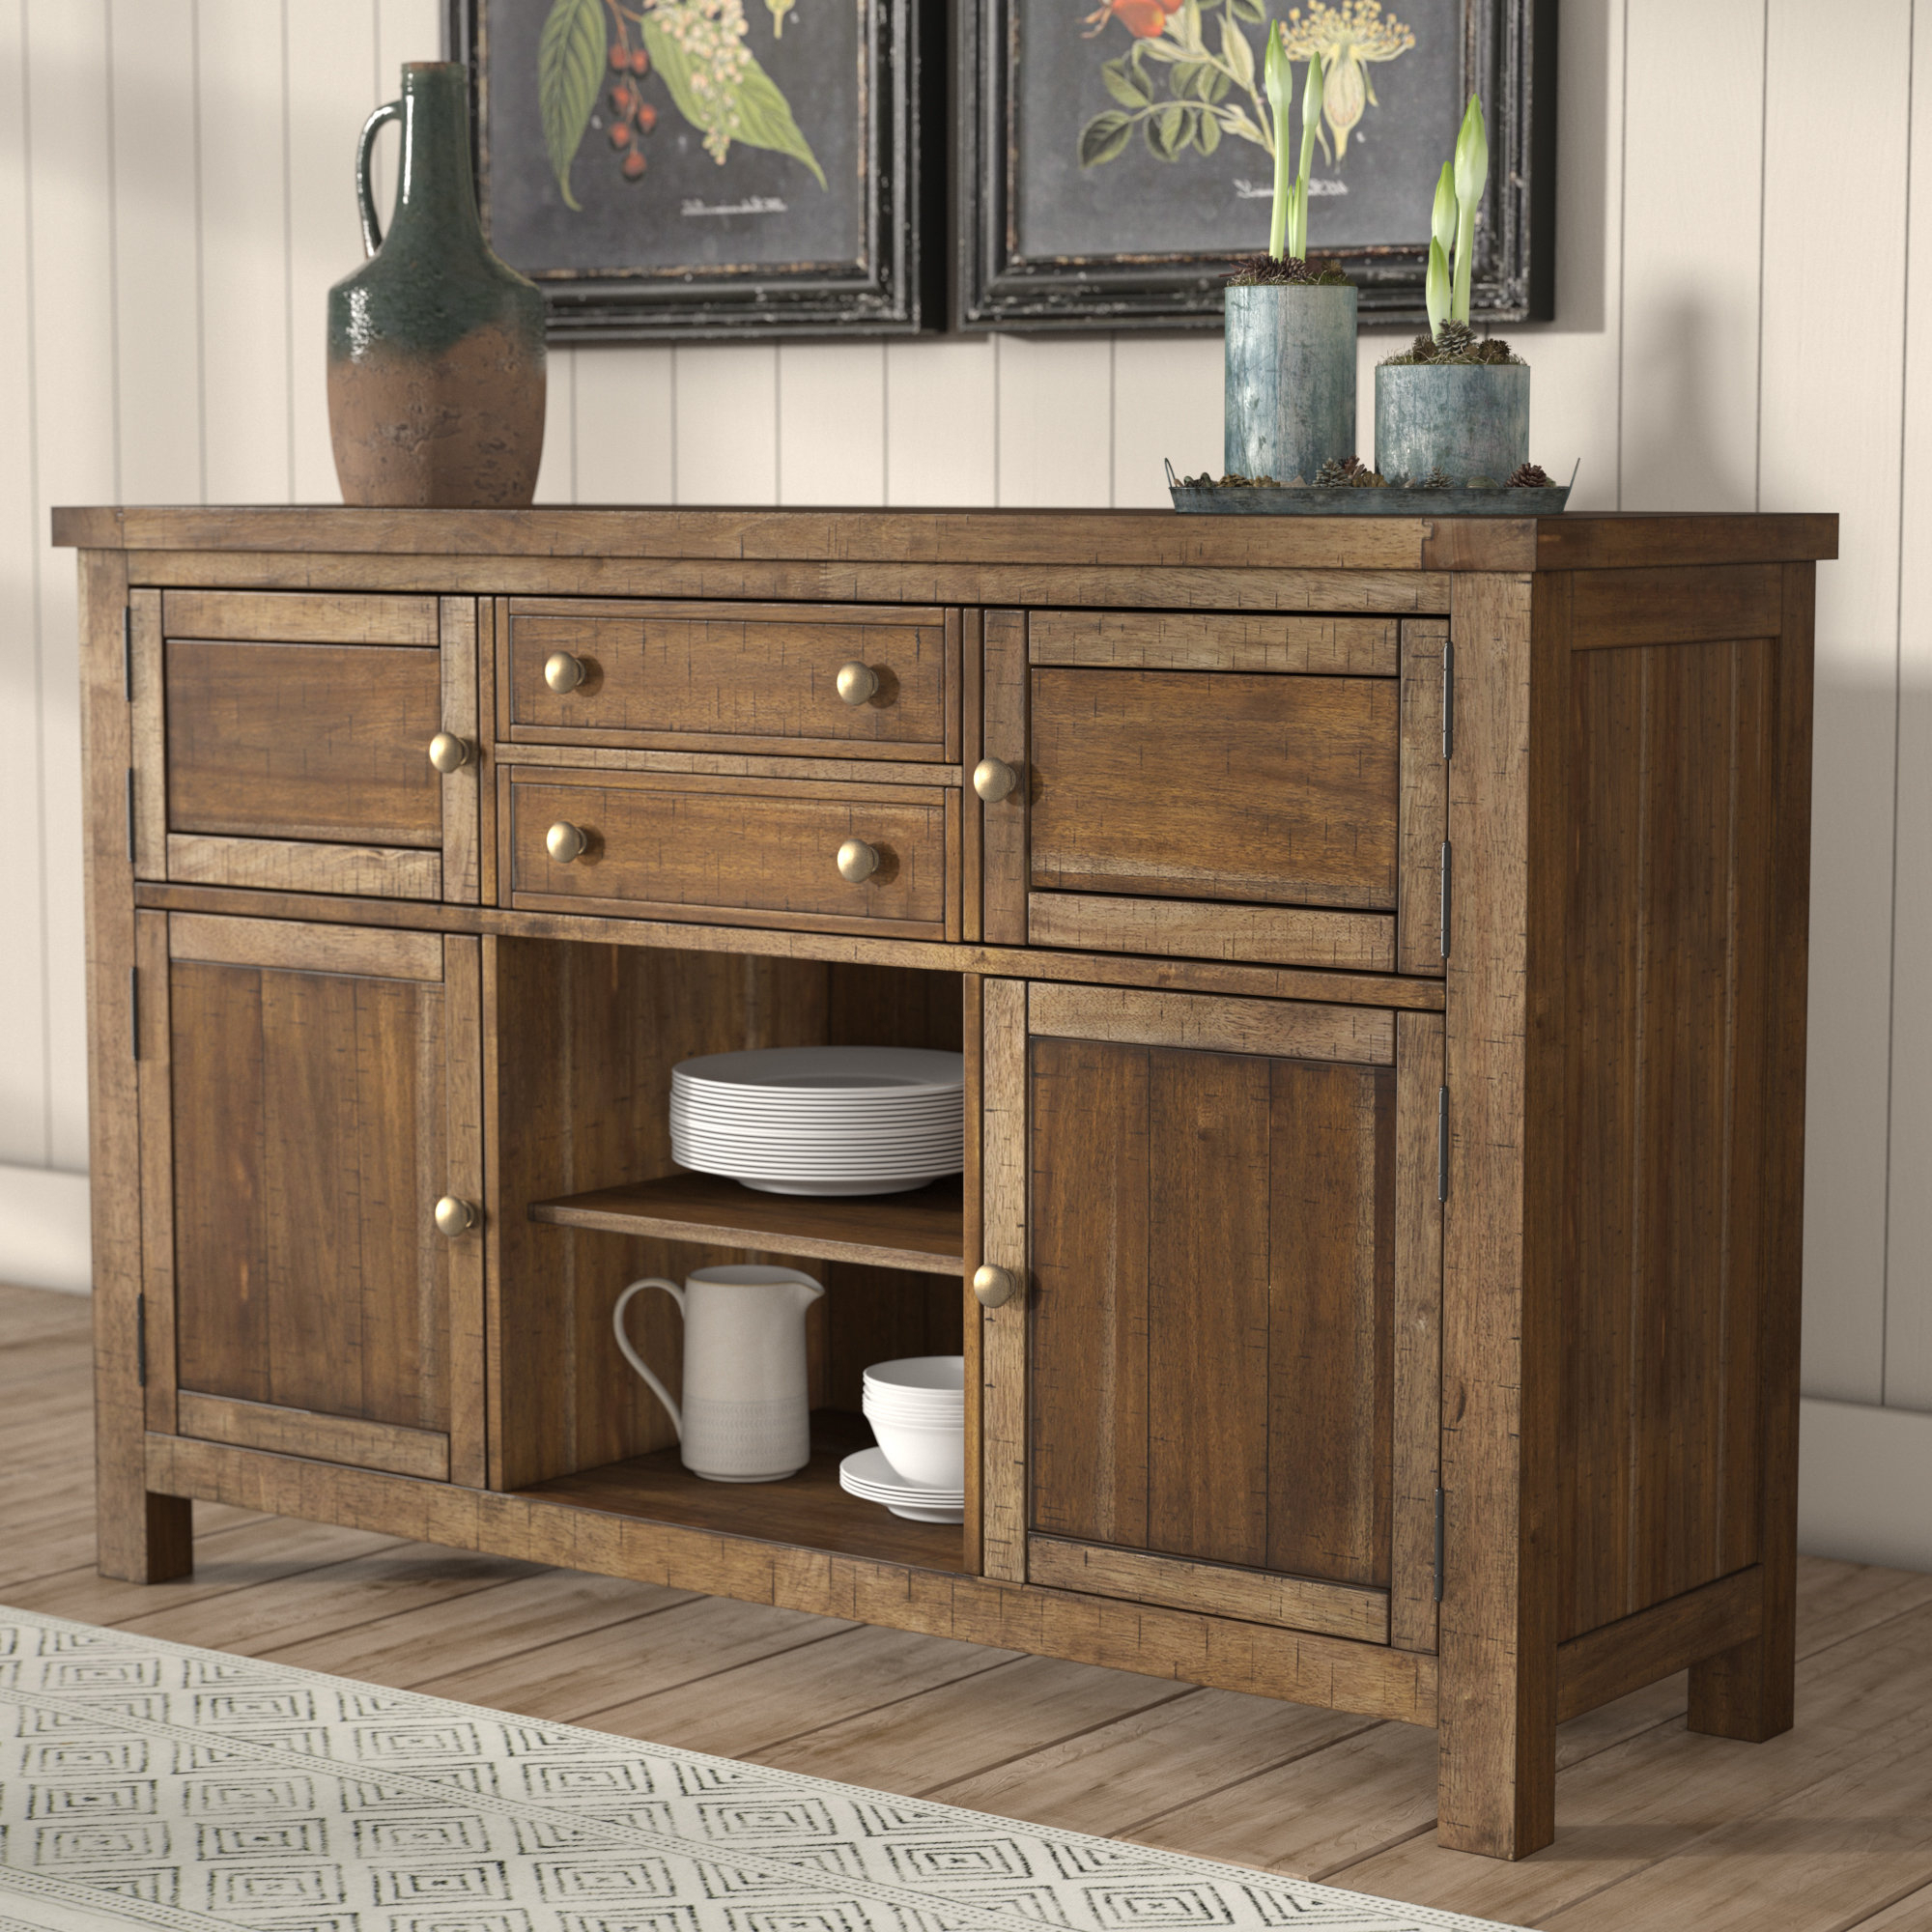 Widely Used Laurel Foundry Modern Farmhouse Hillary Dining Room Buffet Pertaining To Nashoba Sideboards (View 20 of 20)